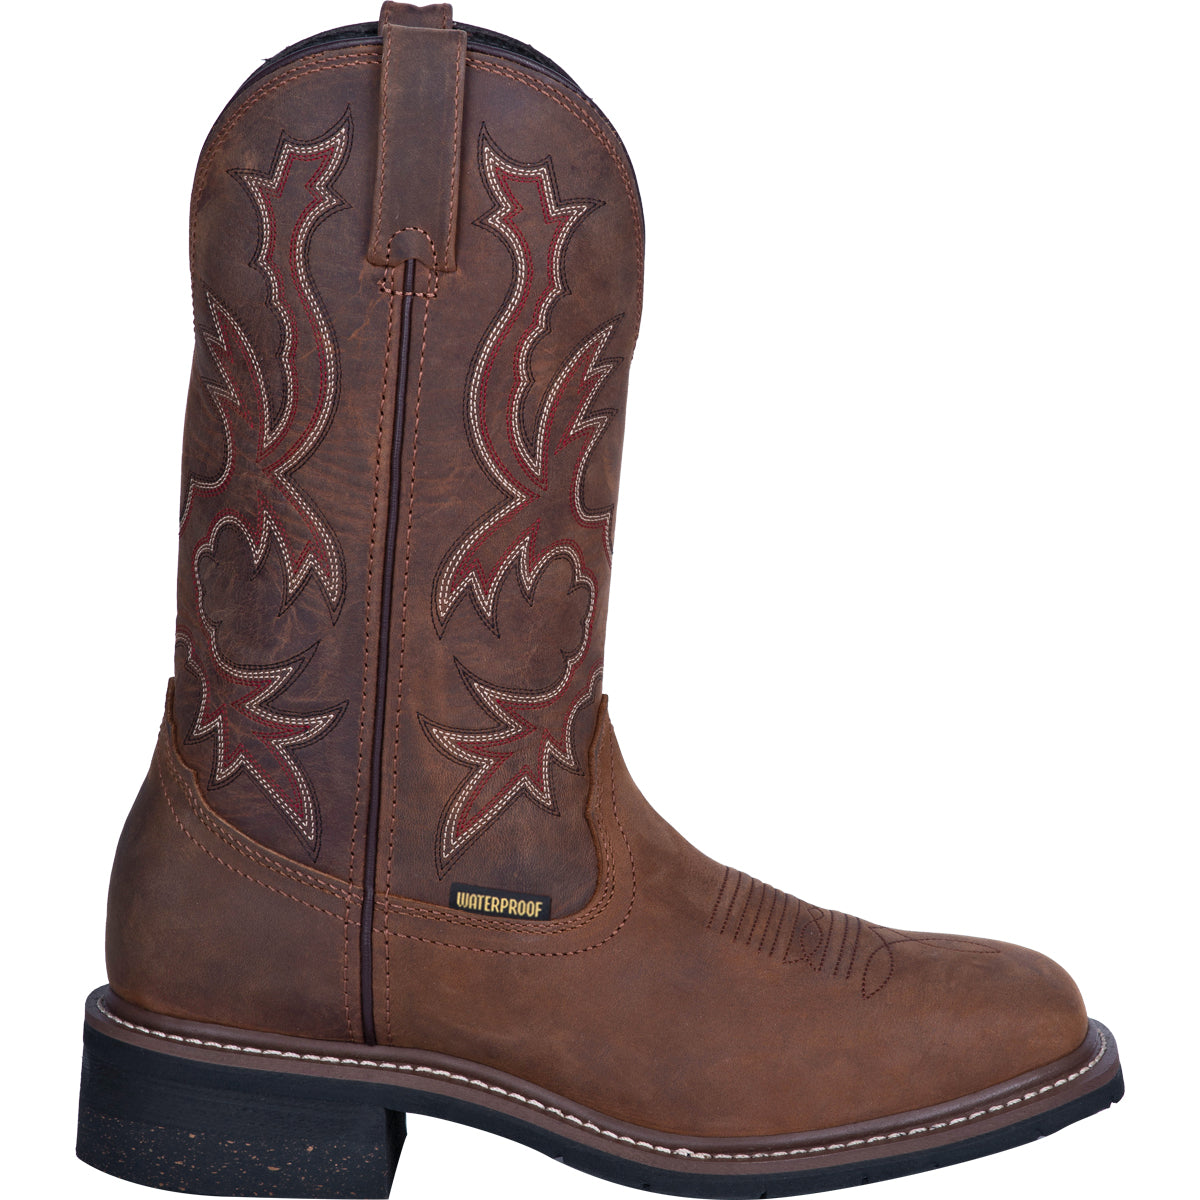 NOGALES WATERPROOF LEATHER BOOT 15521806352426